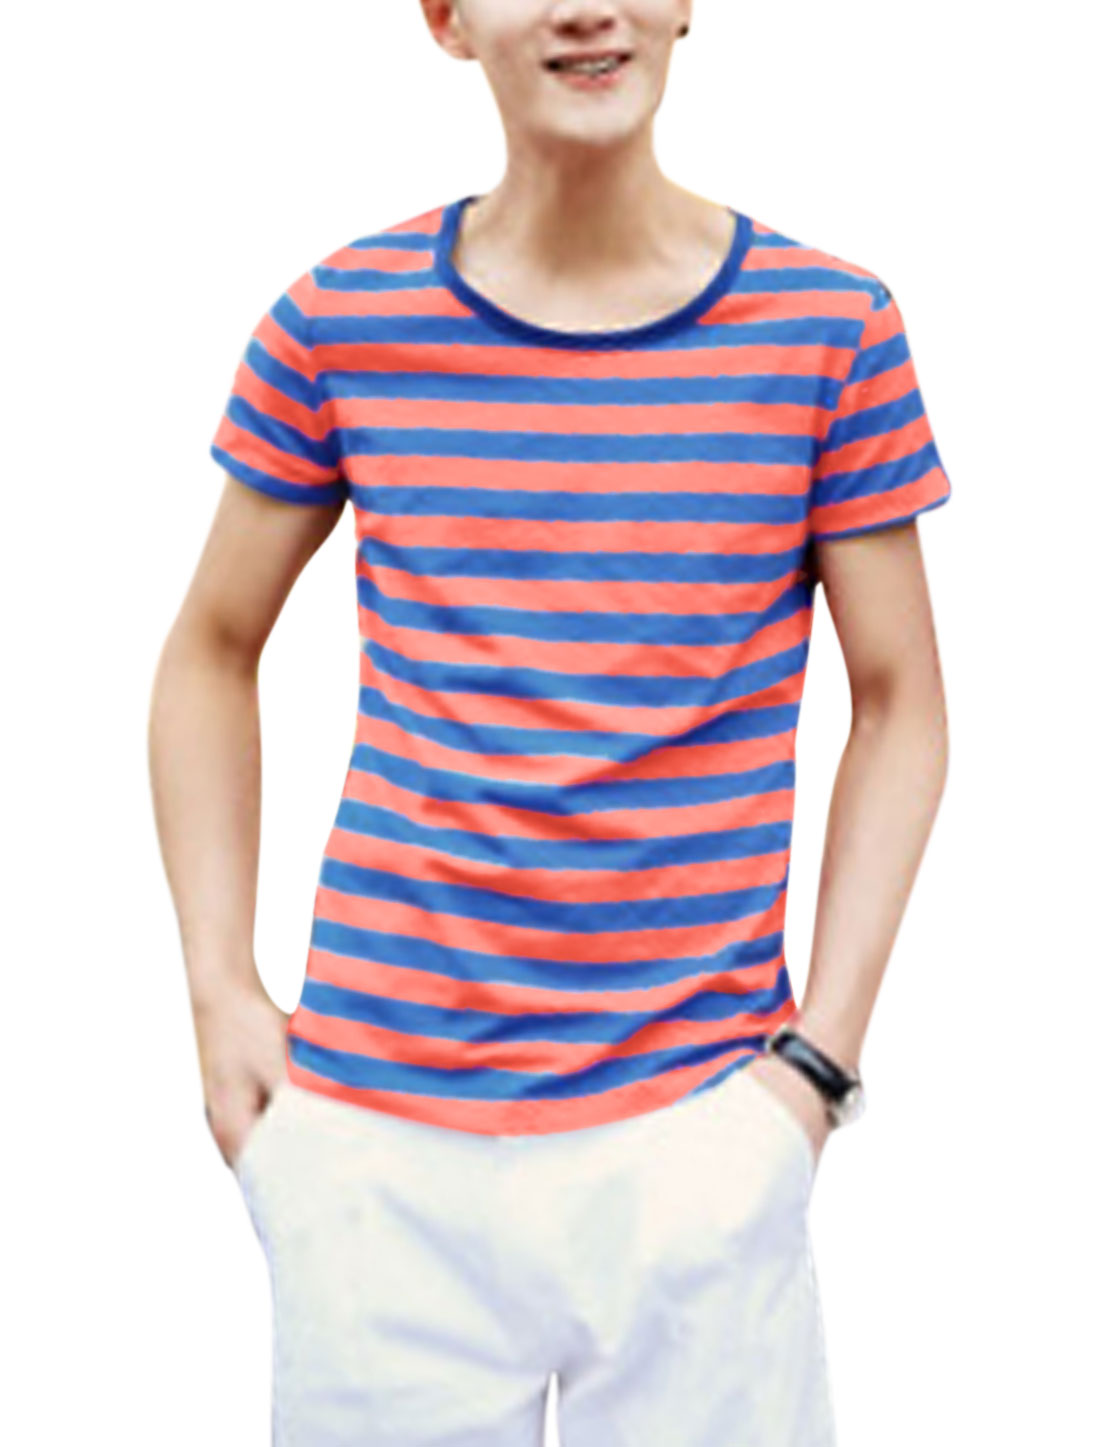 Men Slim Fit Two Tone Stripes Piped Detail Tee Top Blue Coral Pink M